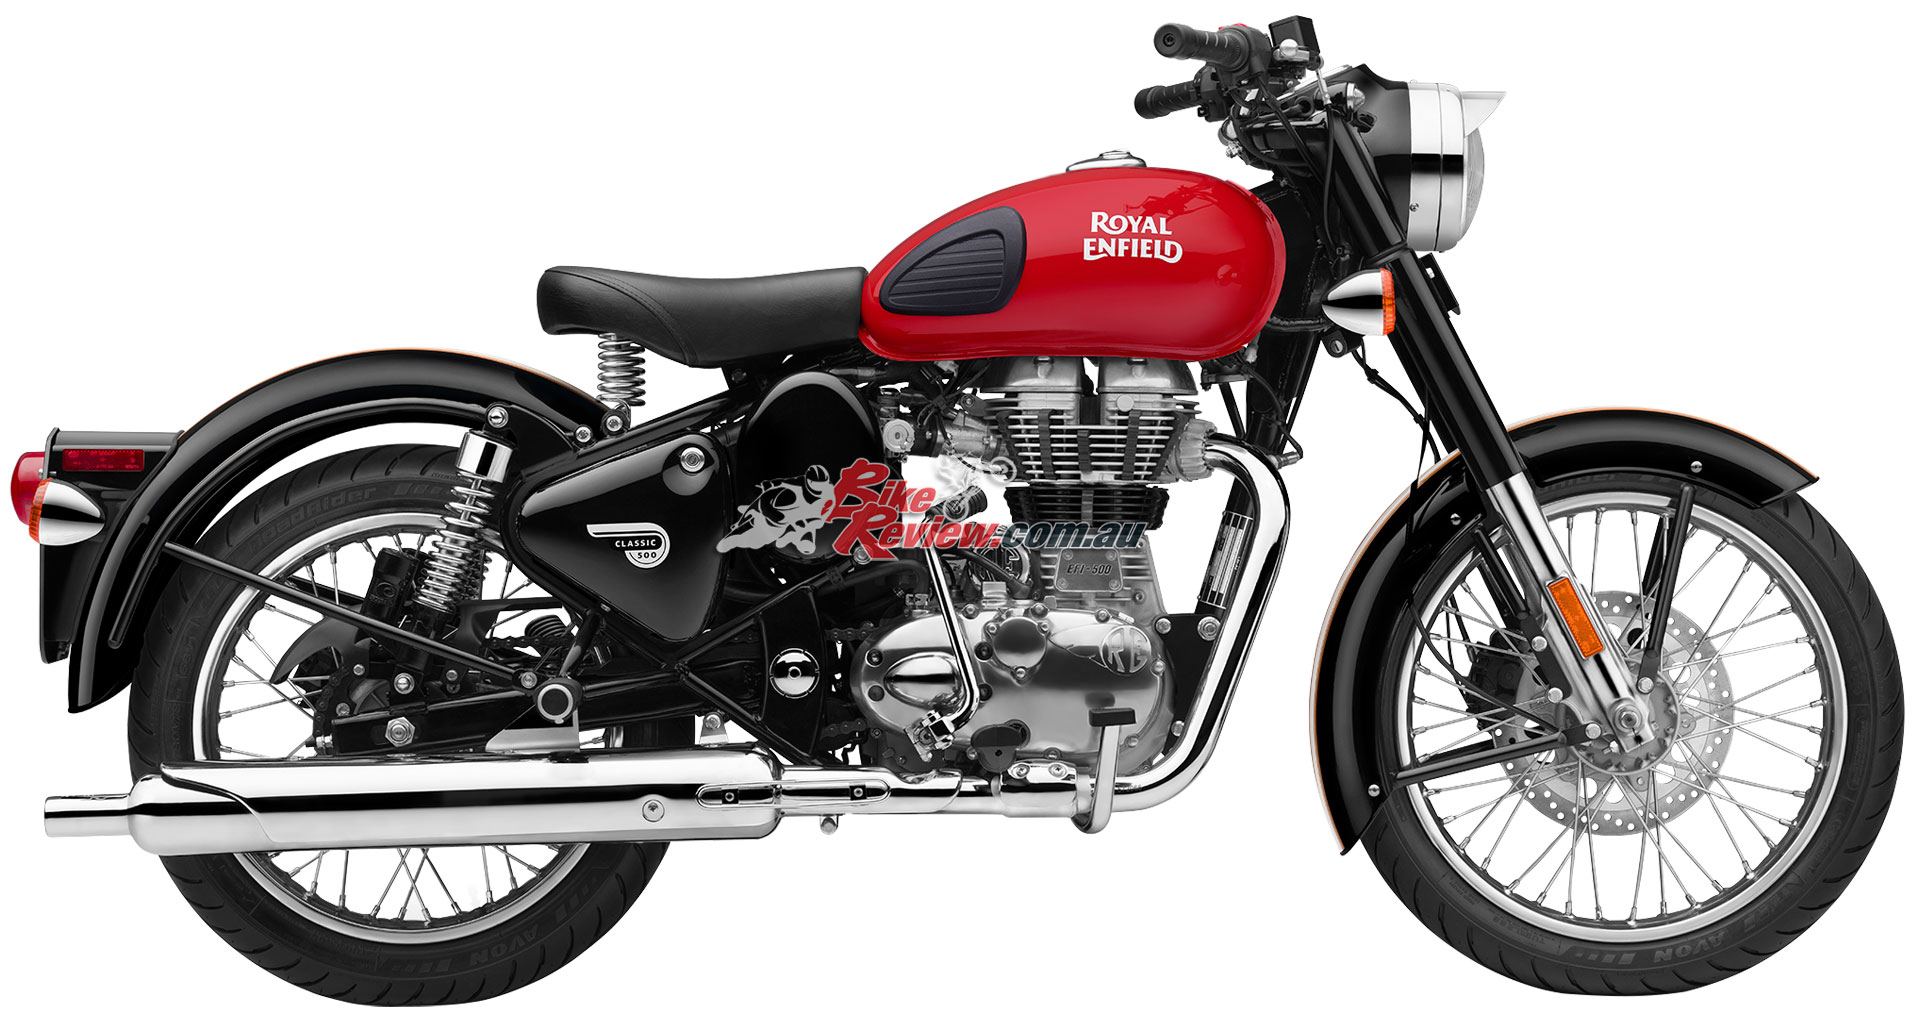 Honda Riding Gear >> Redditch 500 joins the Royal Enfield 350/500 Classic Series - Bike Review